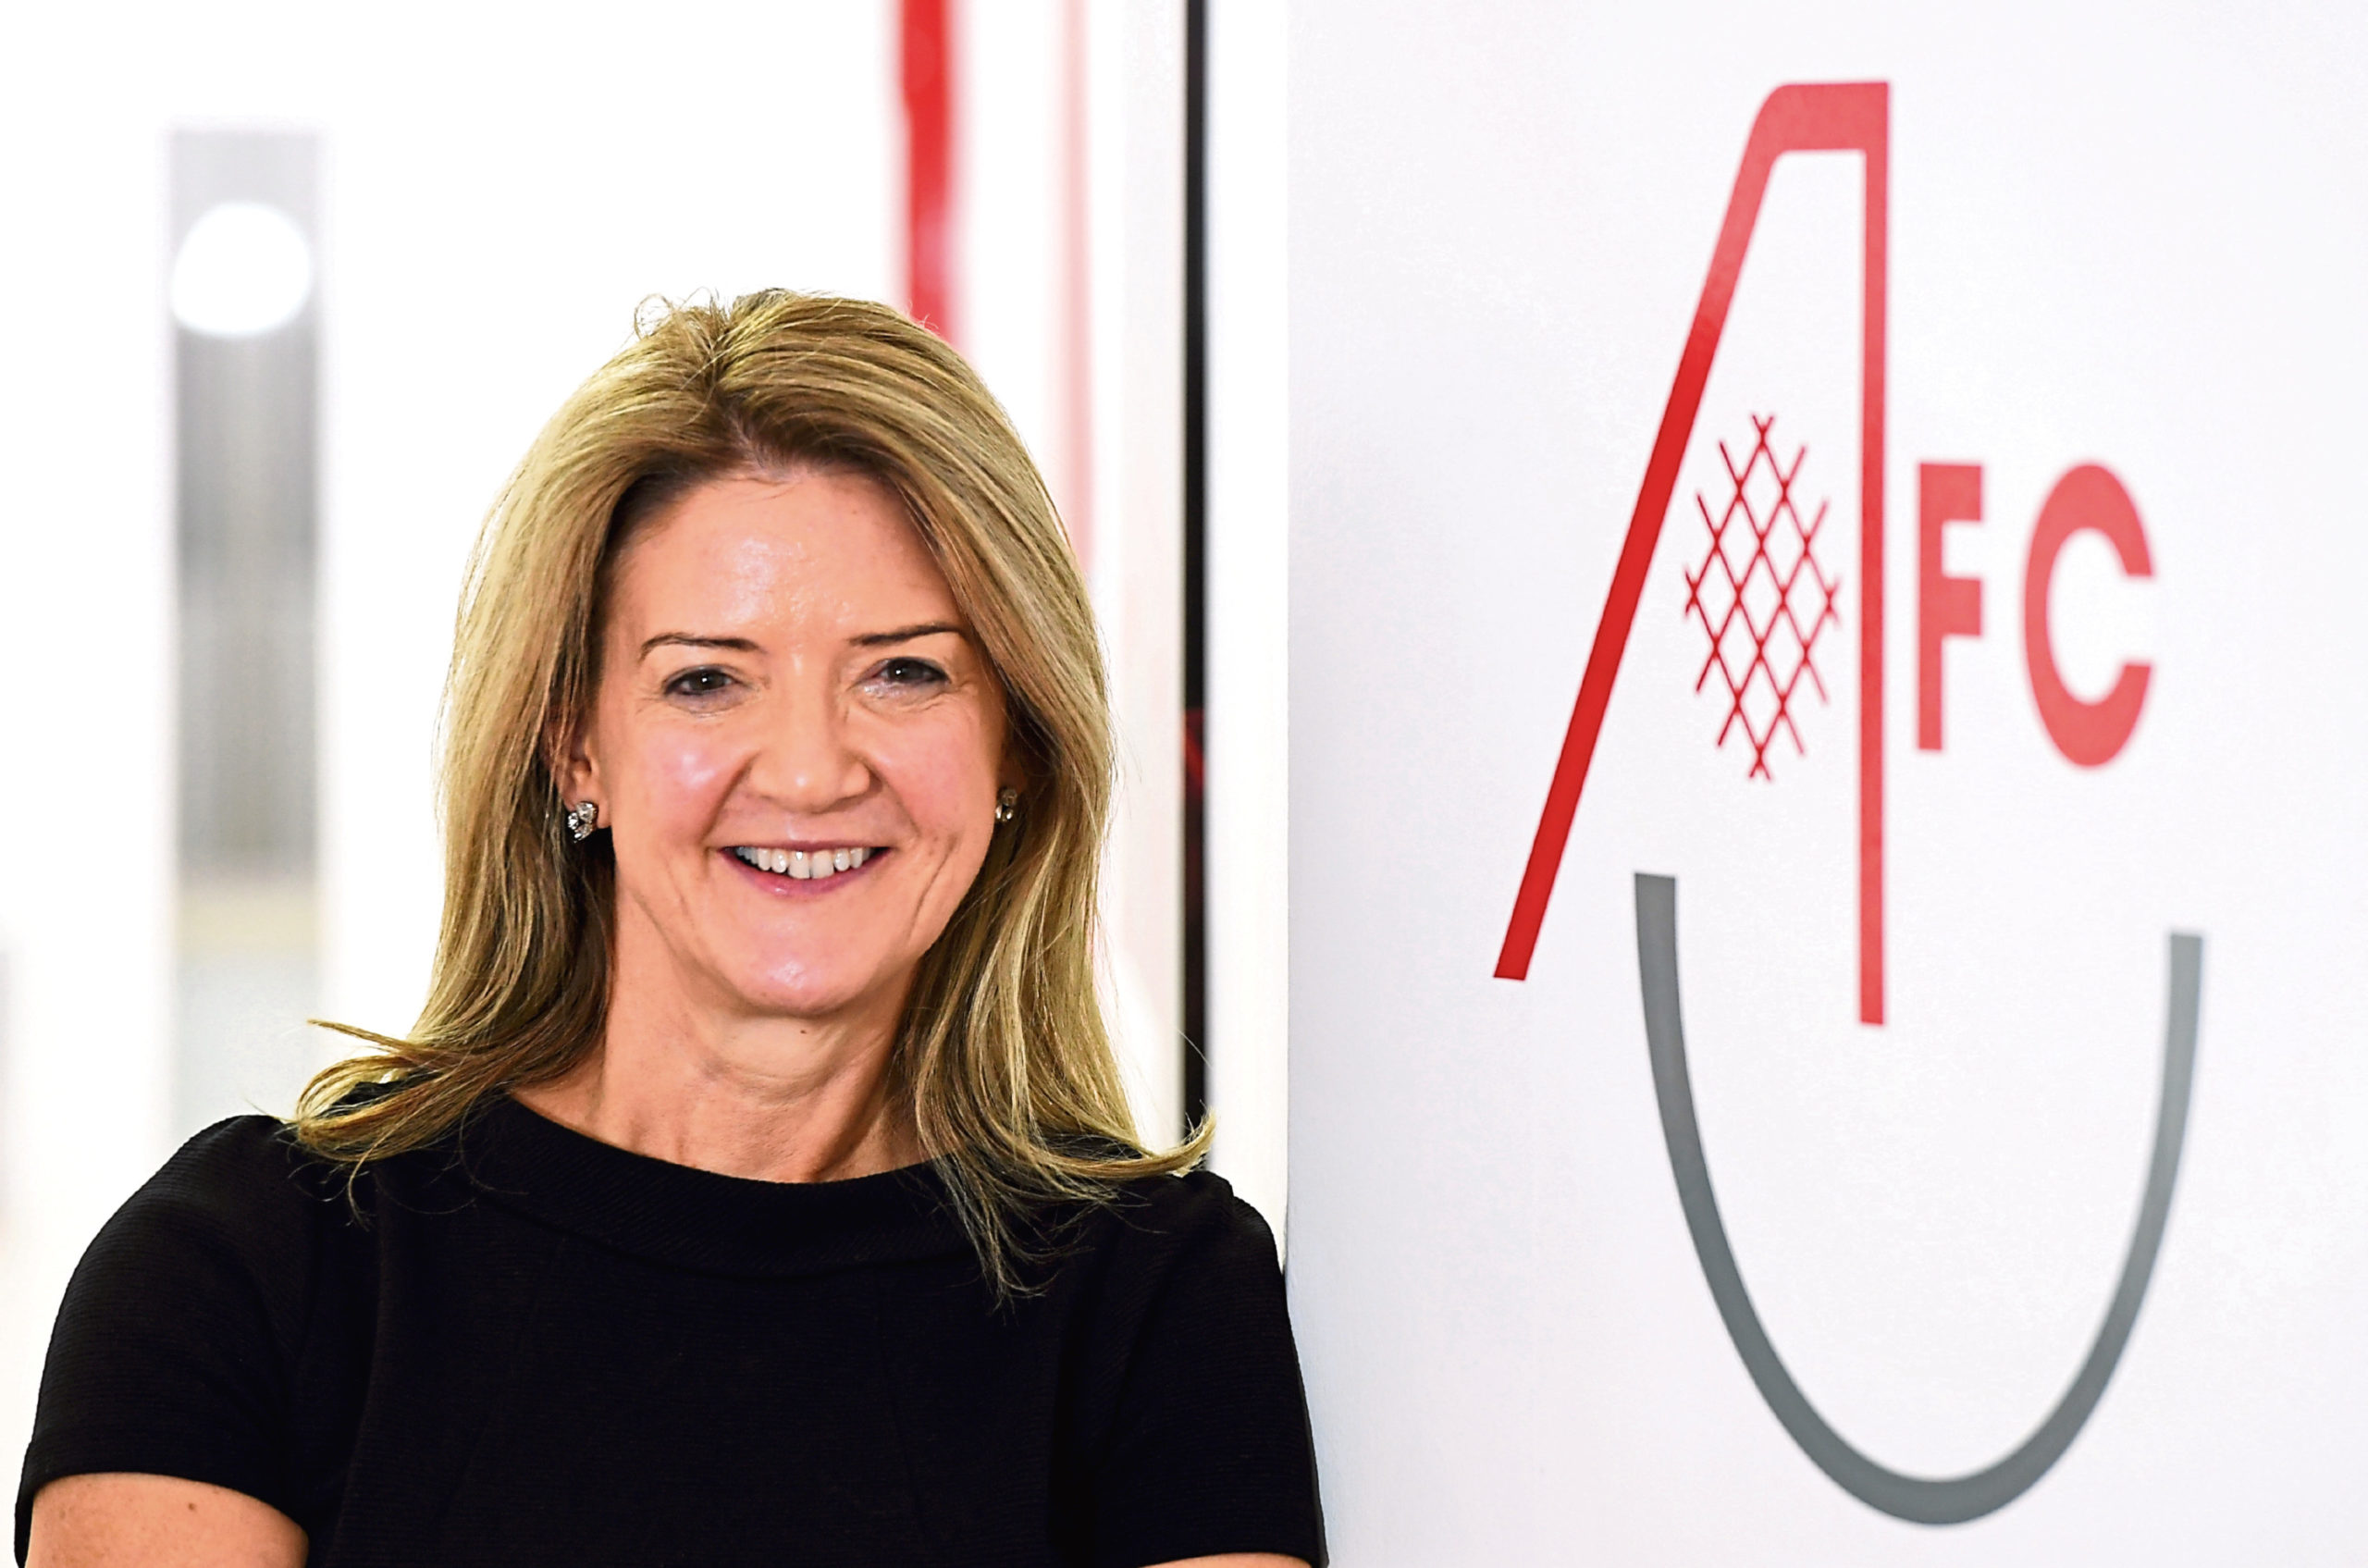 Aberdeen FC Community Trust chief executive Liz Bowie